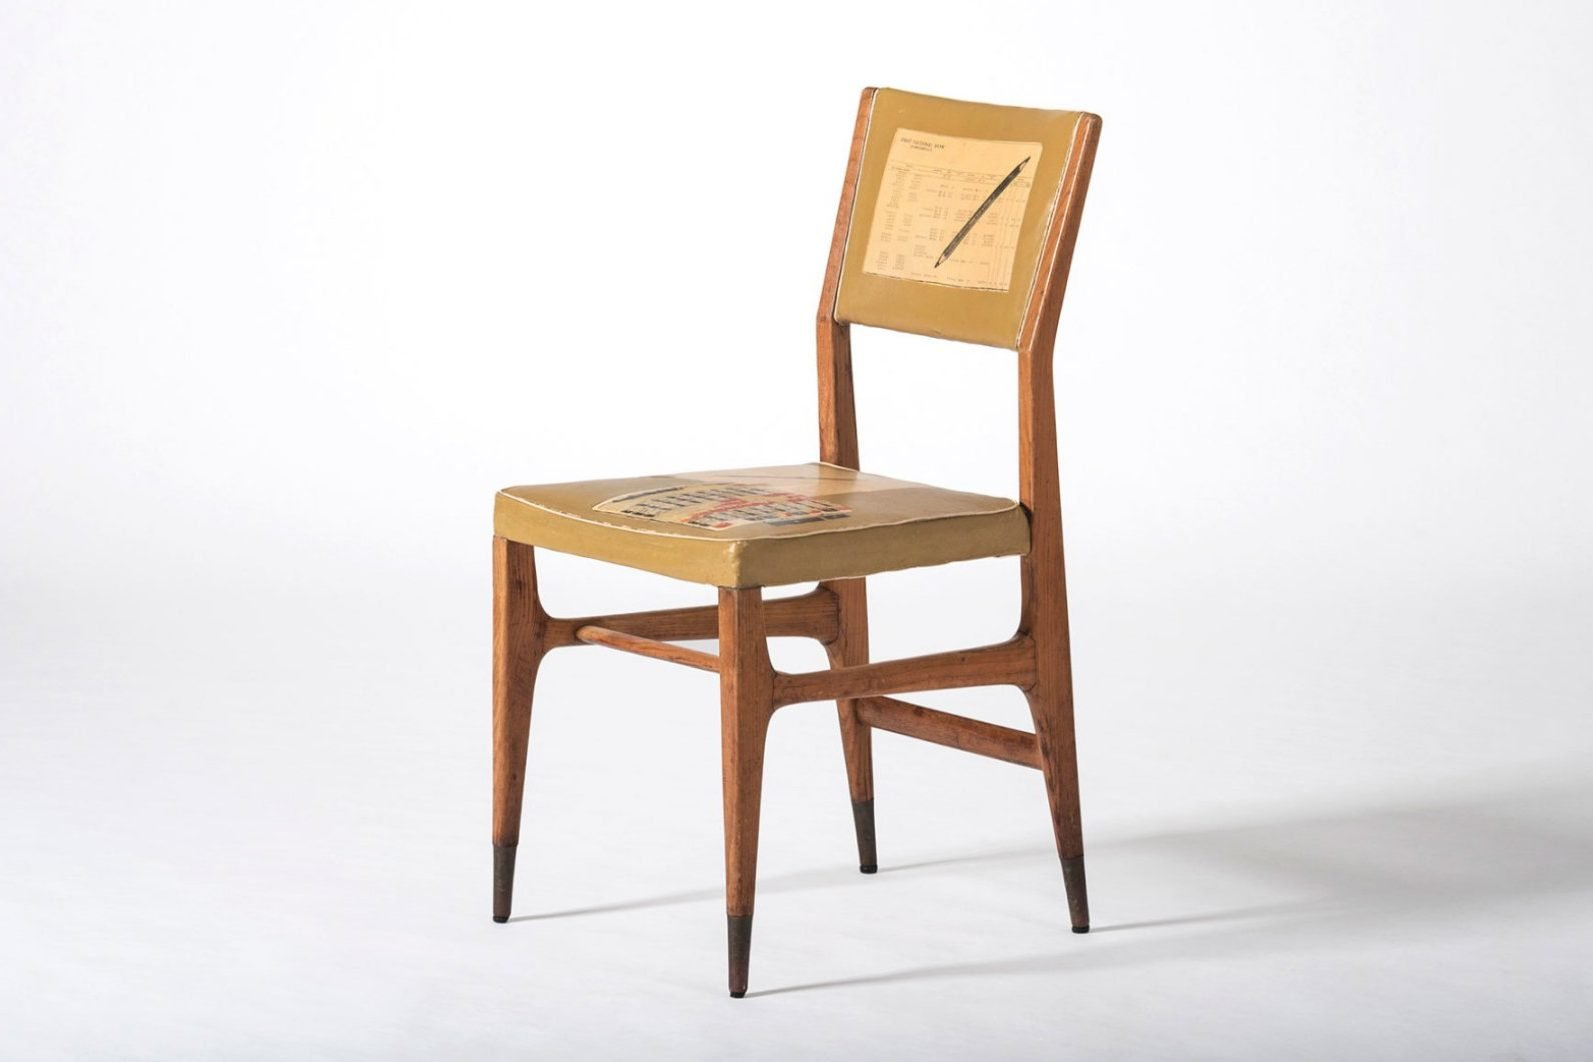 Gio Ponti |  Rare chair for the Vembi-Burroughs offices and training center